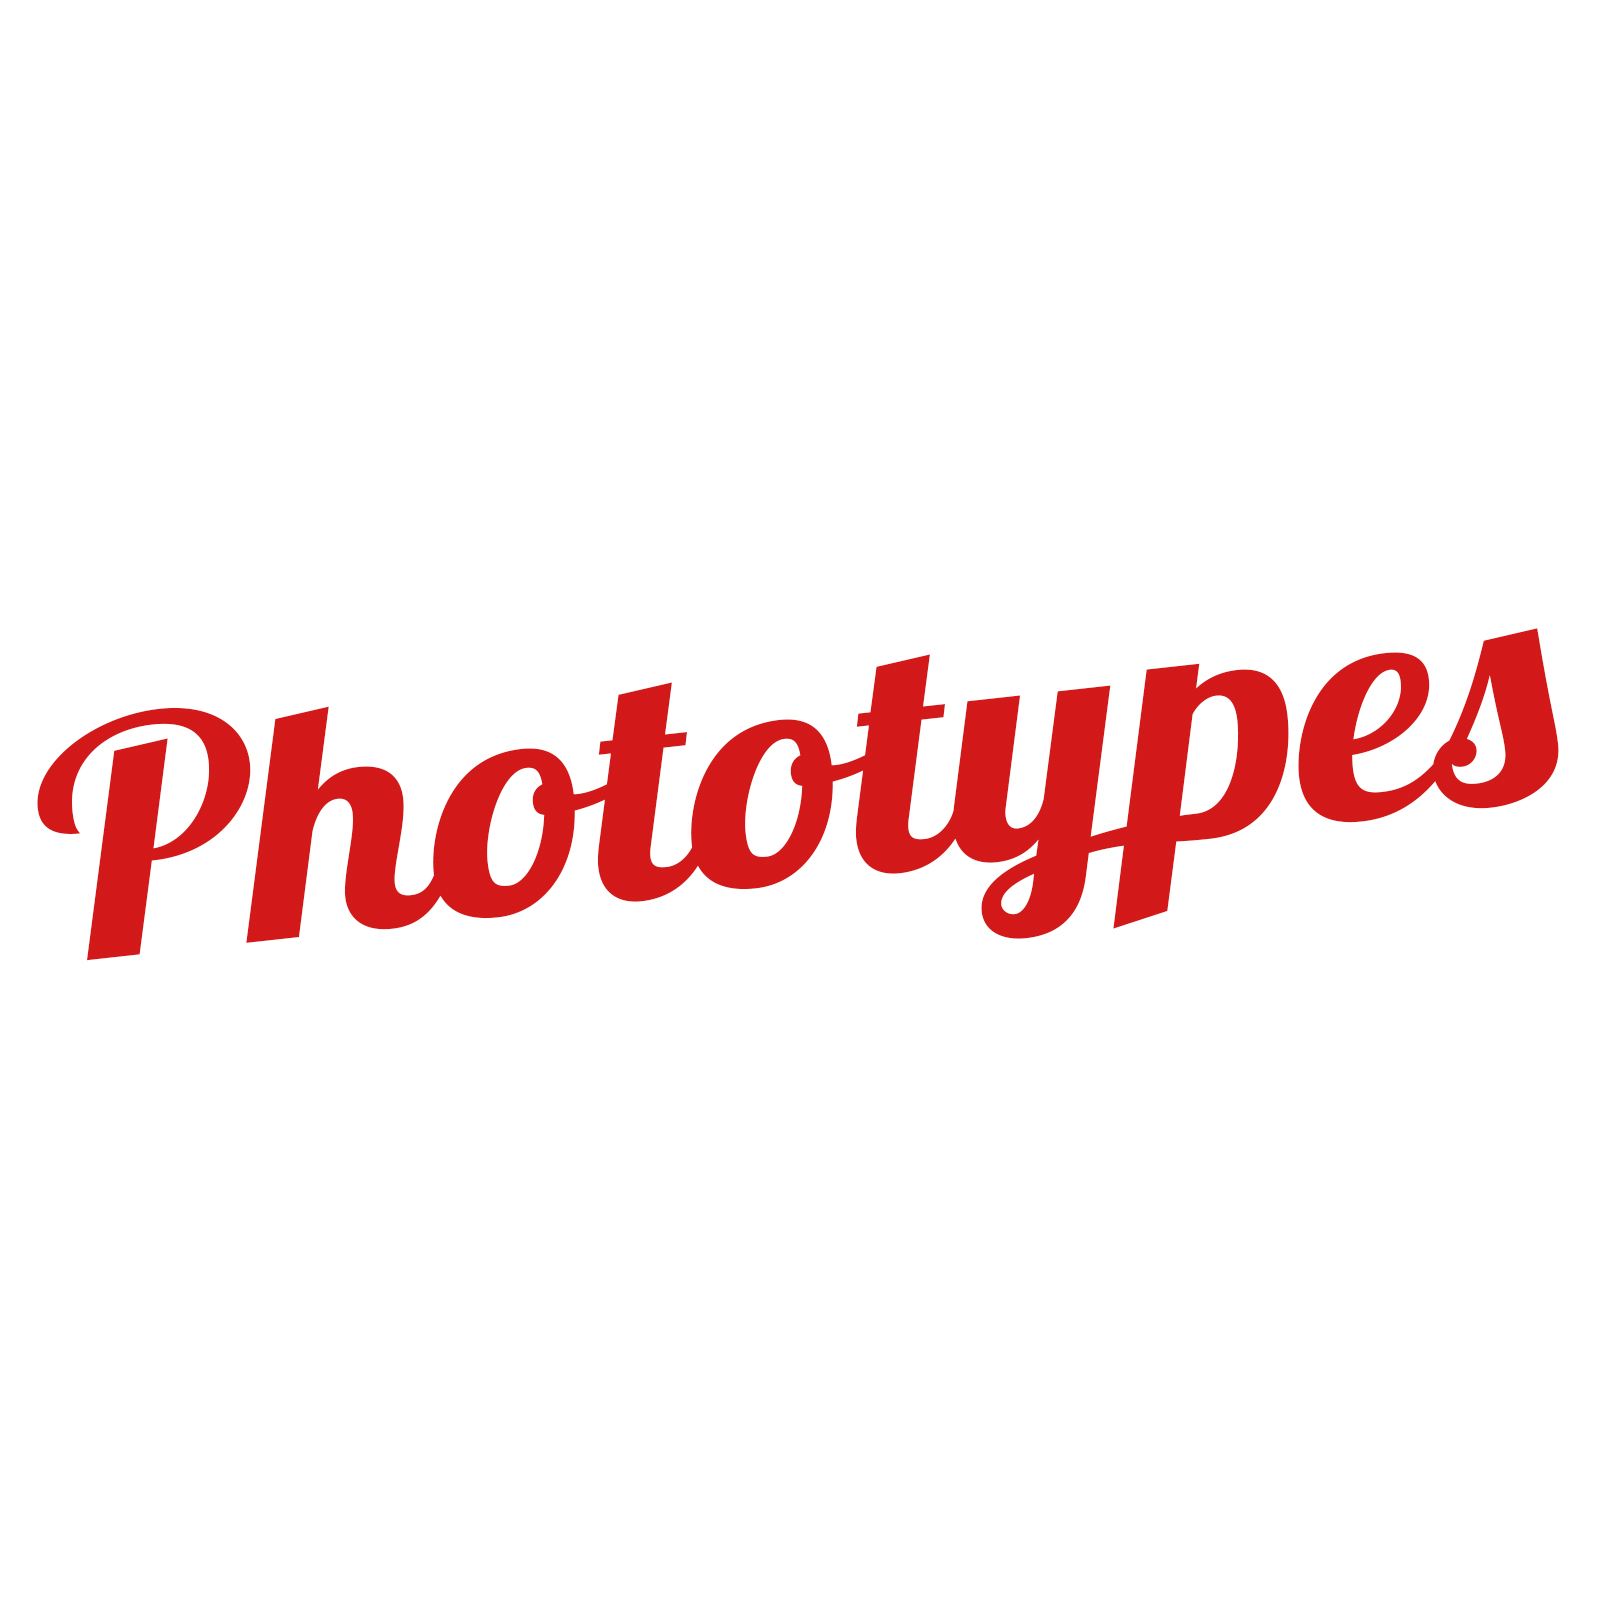 PhotoTypes: Where the world's top photographers reveal their amazing stories and inspirations